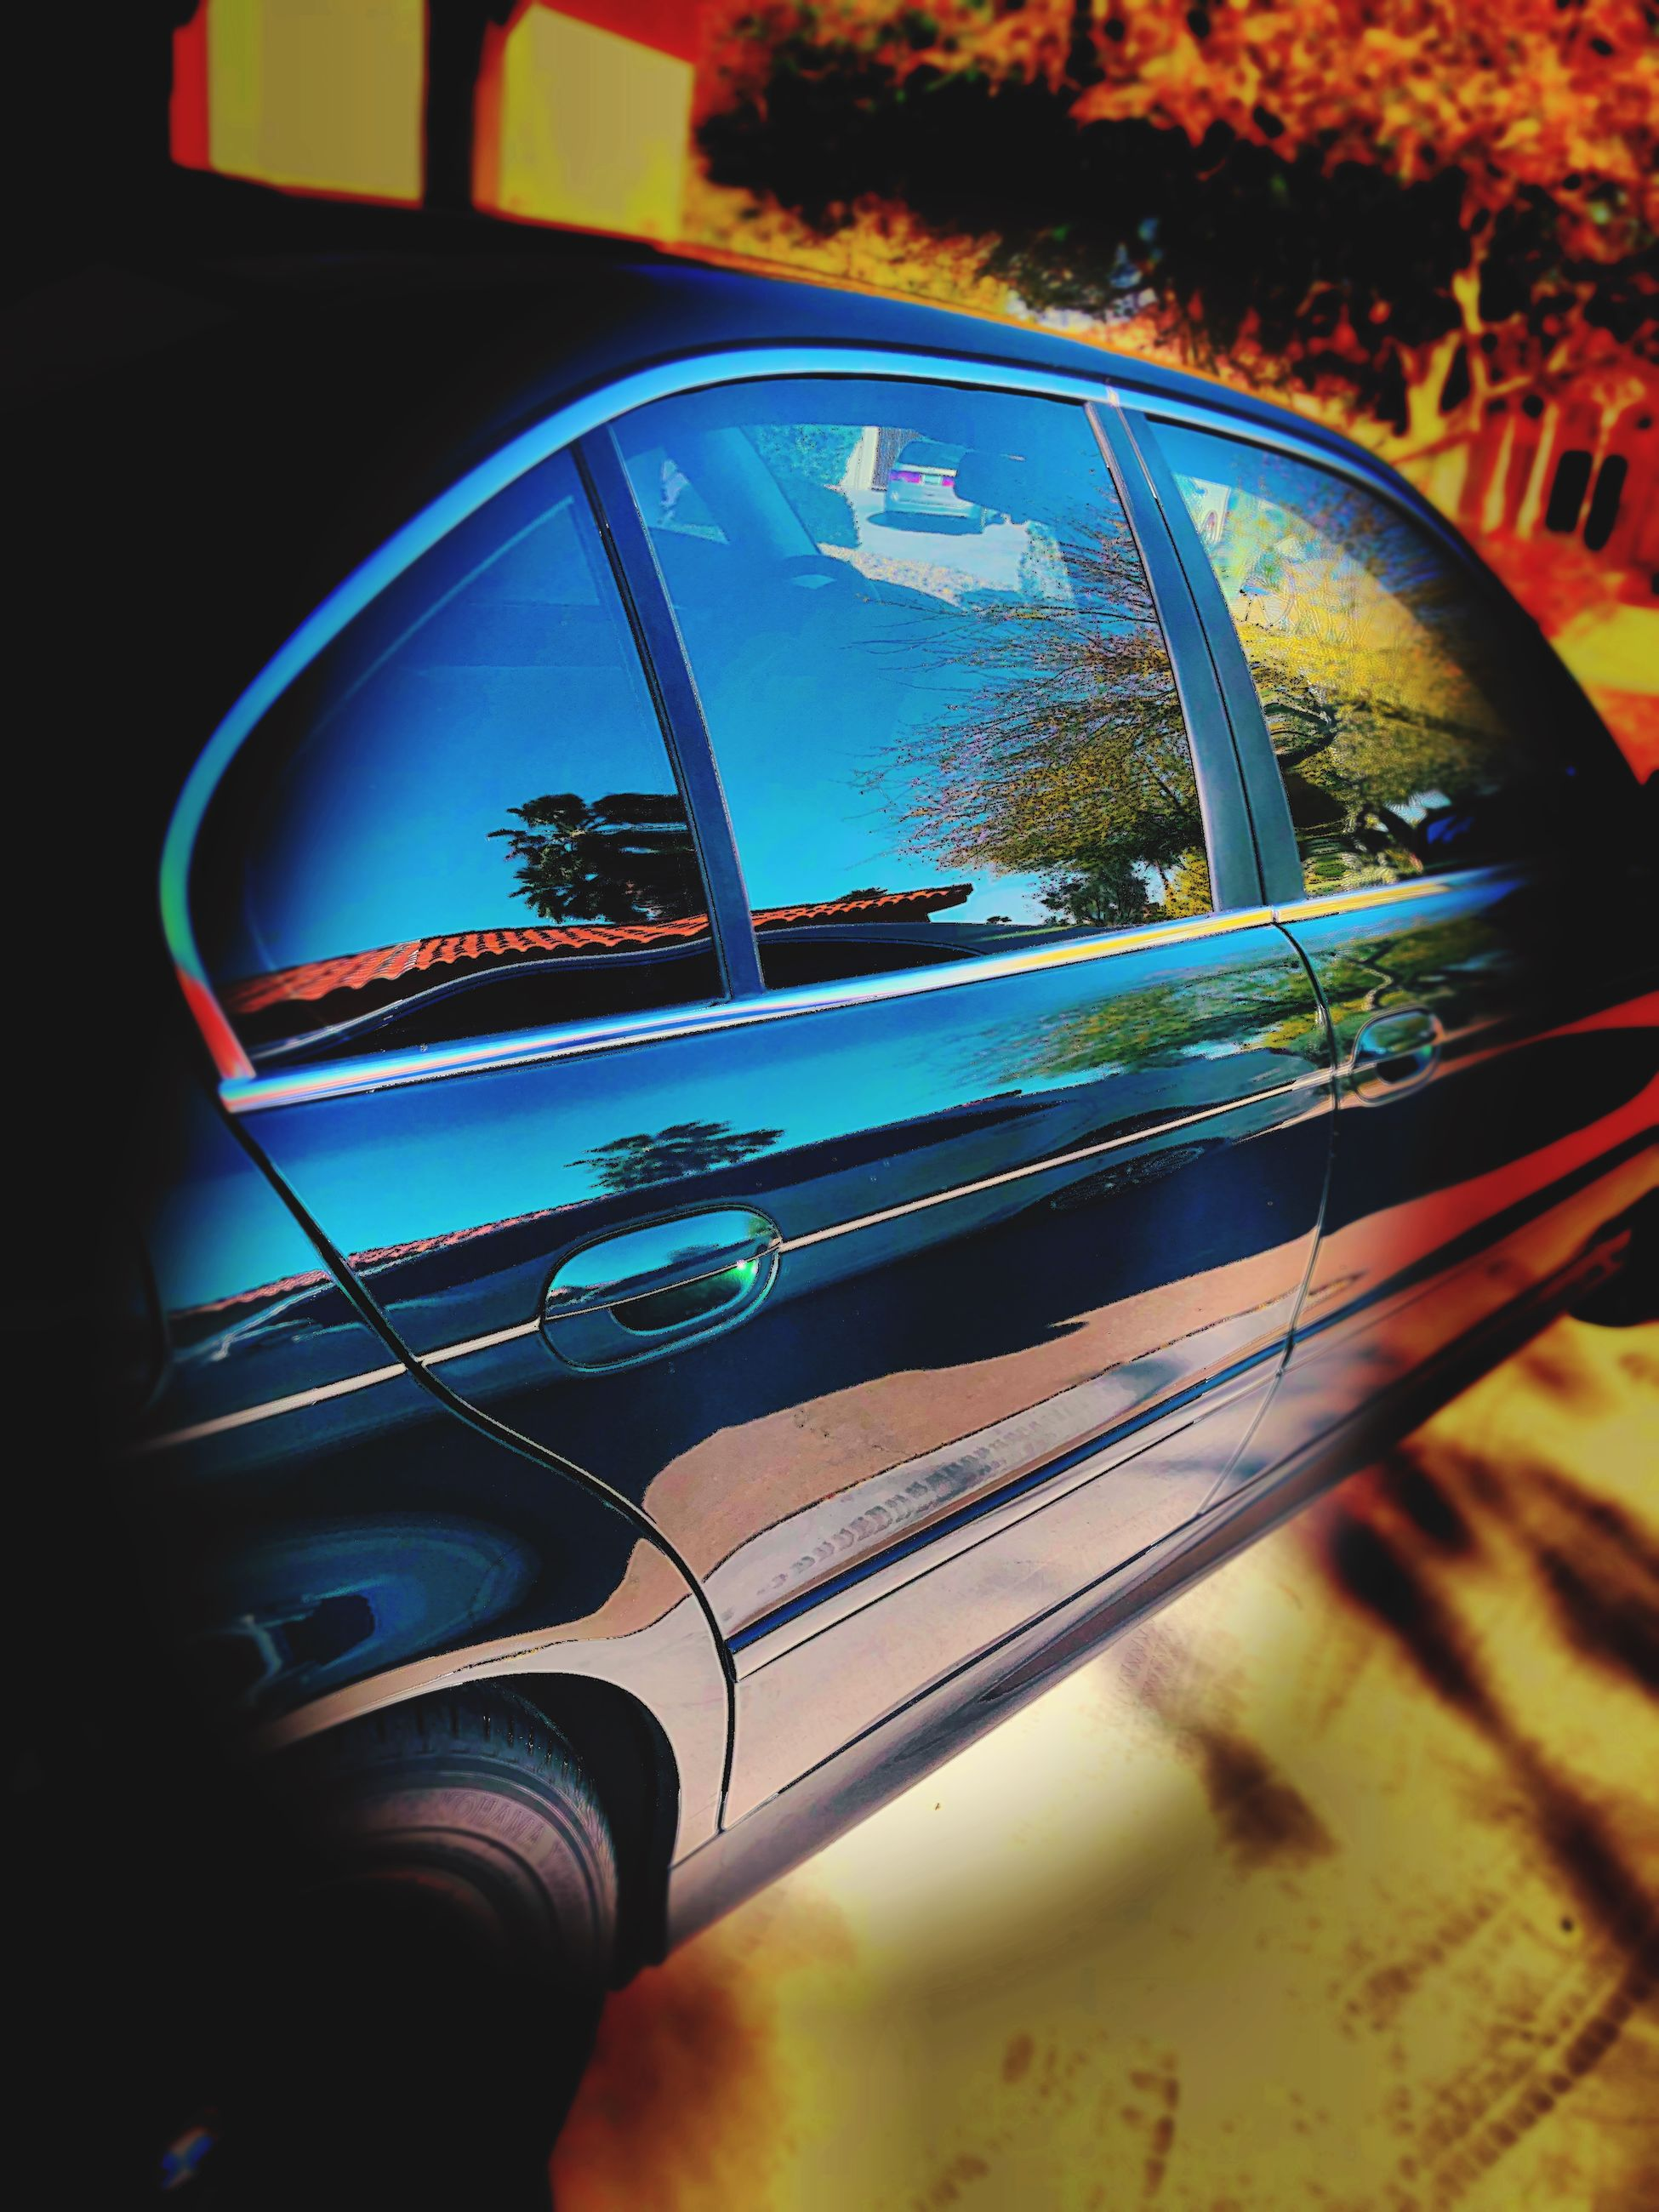 motor vehicle, car, reflection, land vehicle, transportation, mode of transportation, glass - material, side-view mirror, human body part, real people, human hand, one person, tree, nature, hand, transparent, day, close-up, vehicle interior, travel, outdoors, finger, road trip